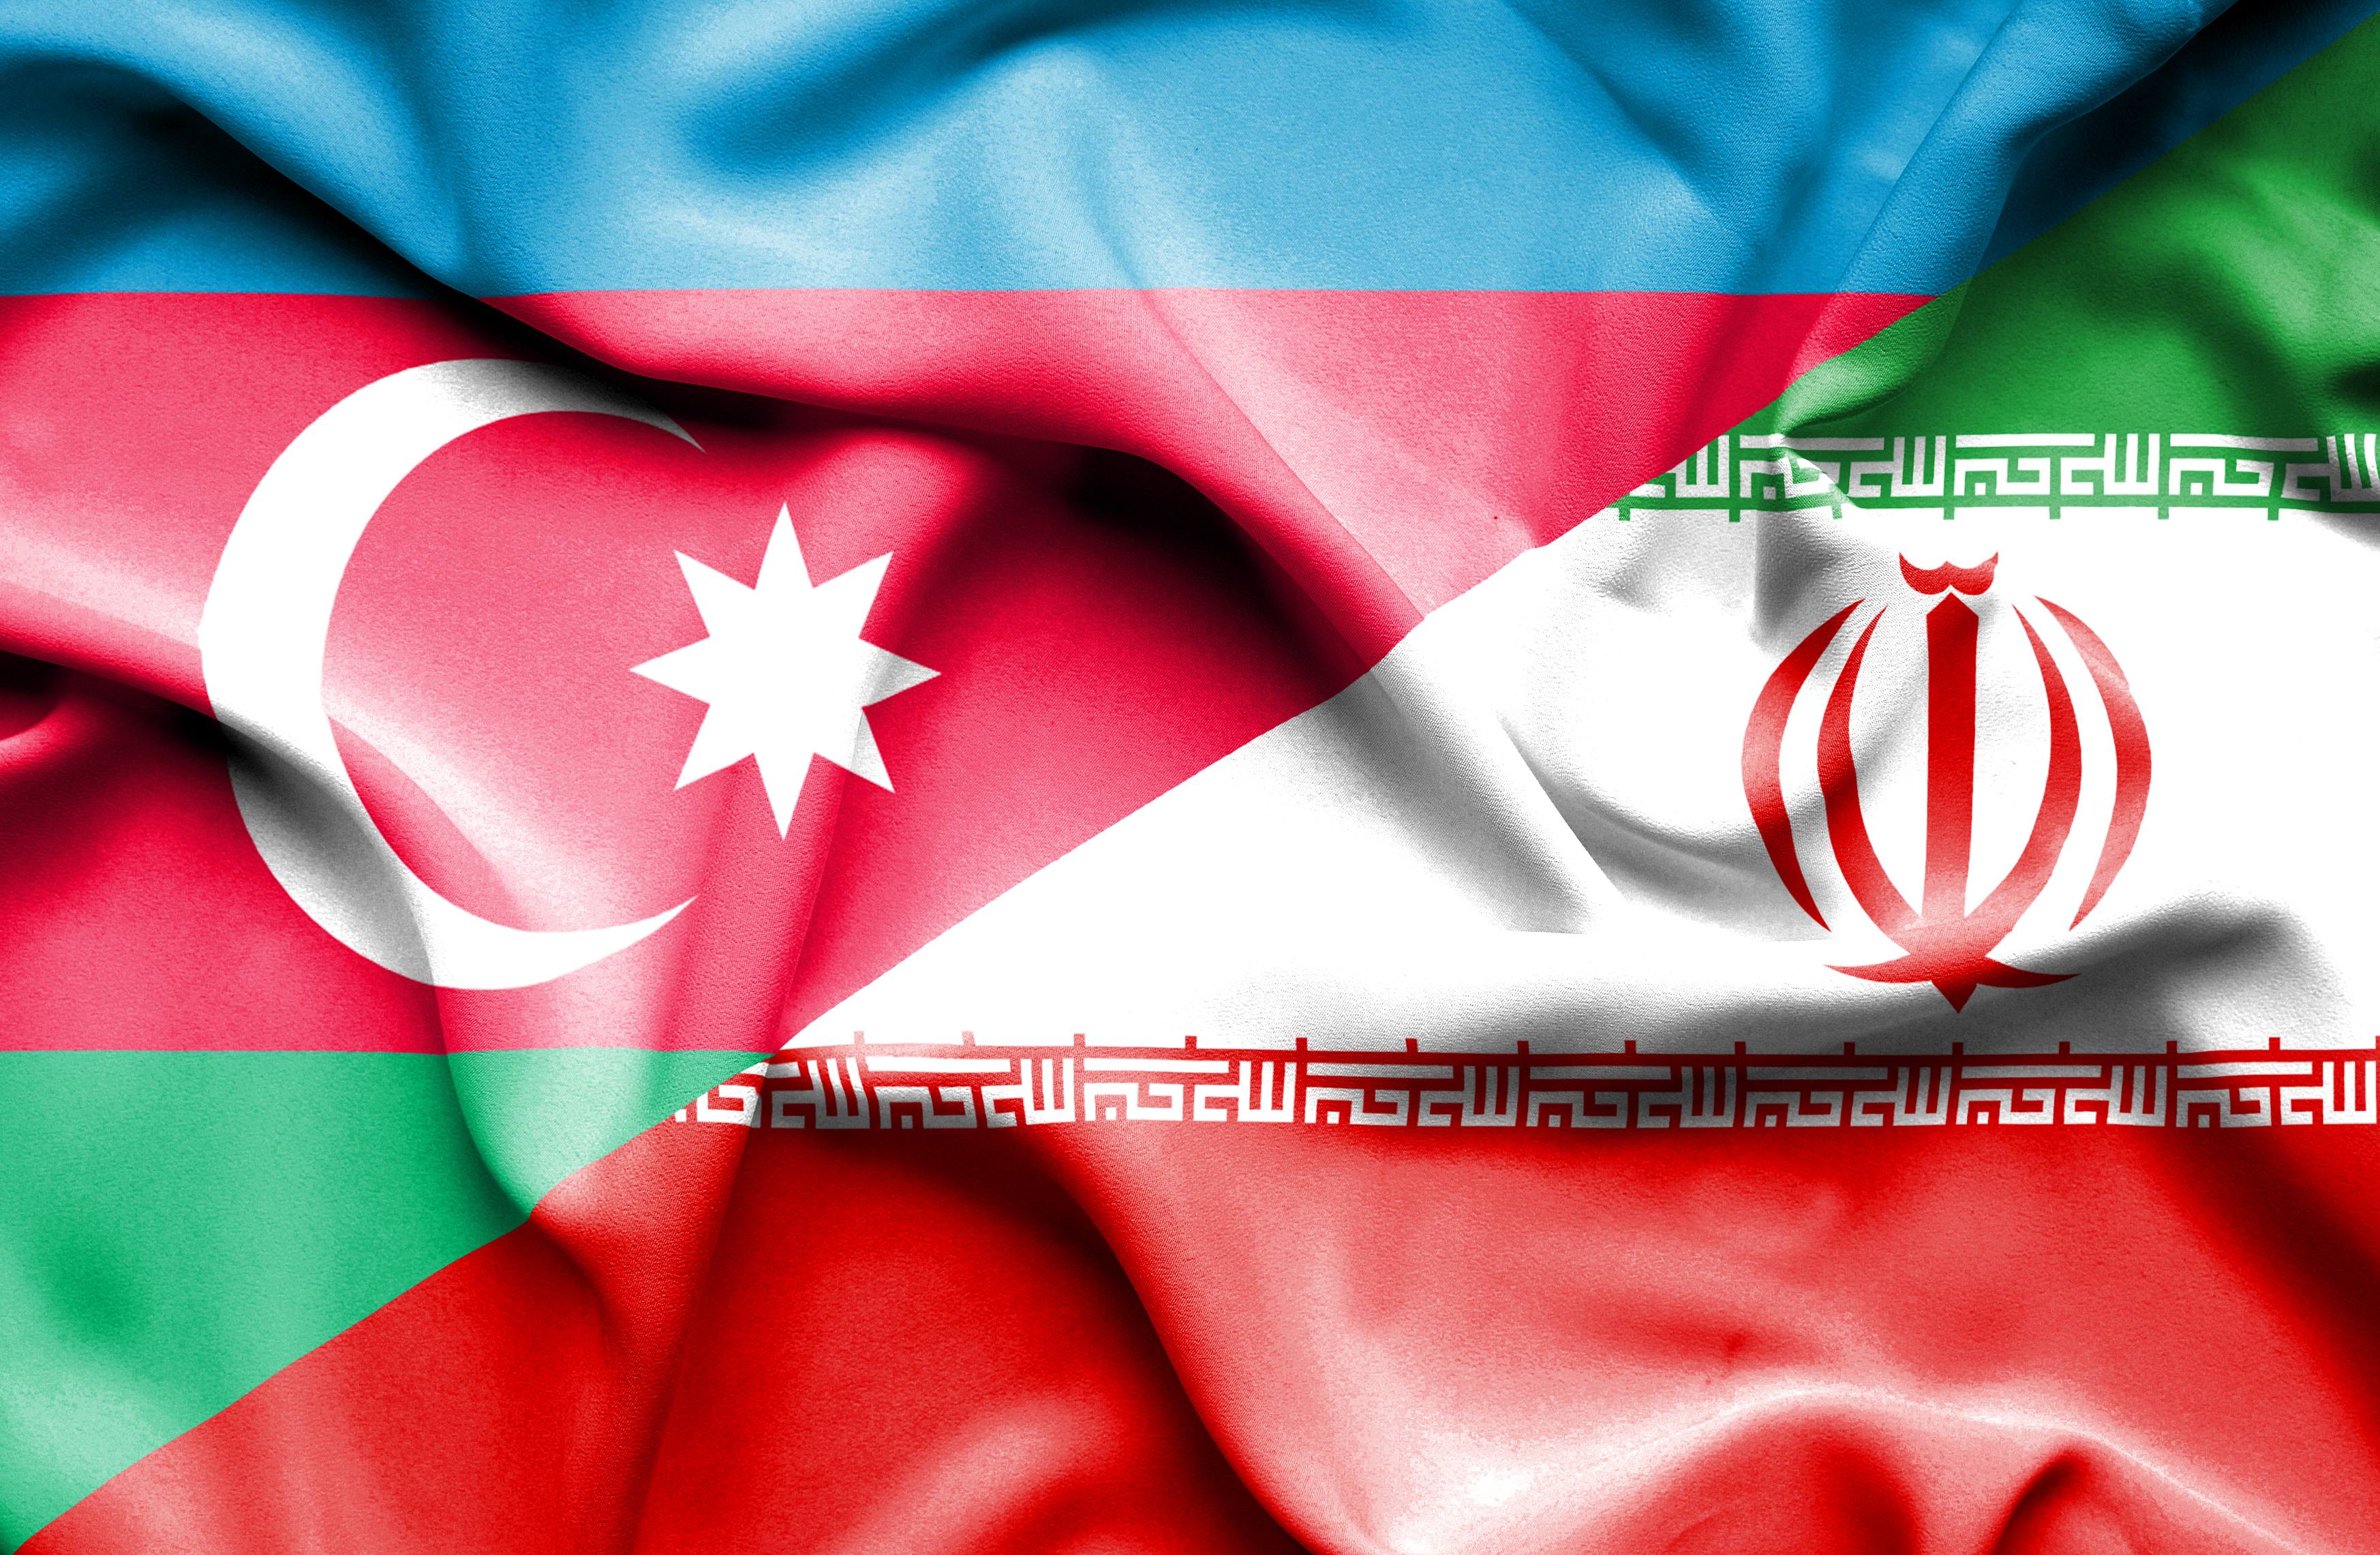 Iran-Azerbaijan Relations: 5 Geopolitical Effects You Need to Know